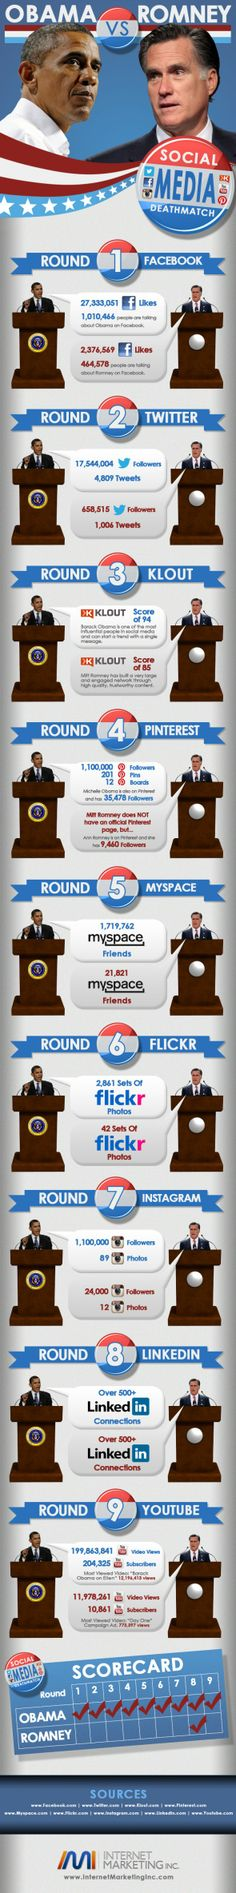 #INFOGRAPHIC: SOCIAL MEDIA SHOWDOWN – OBAMA VS ROMNEY